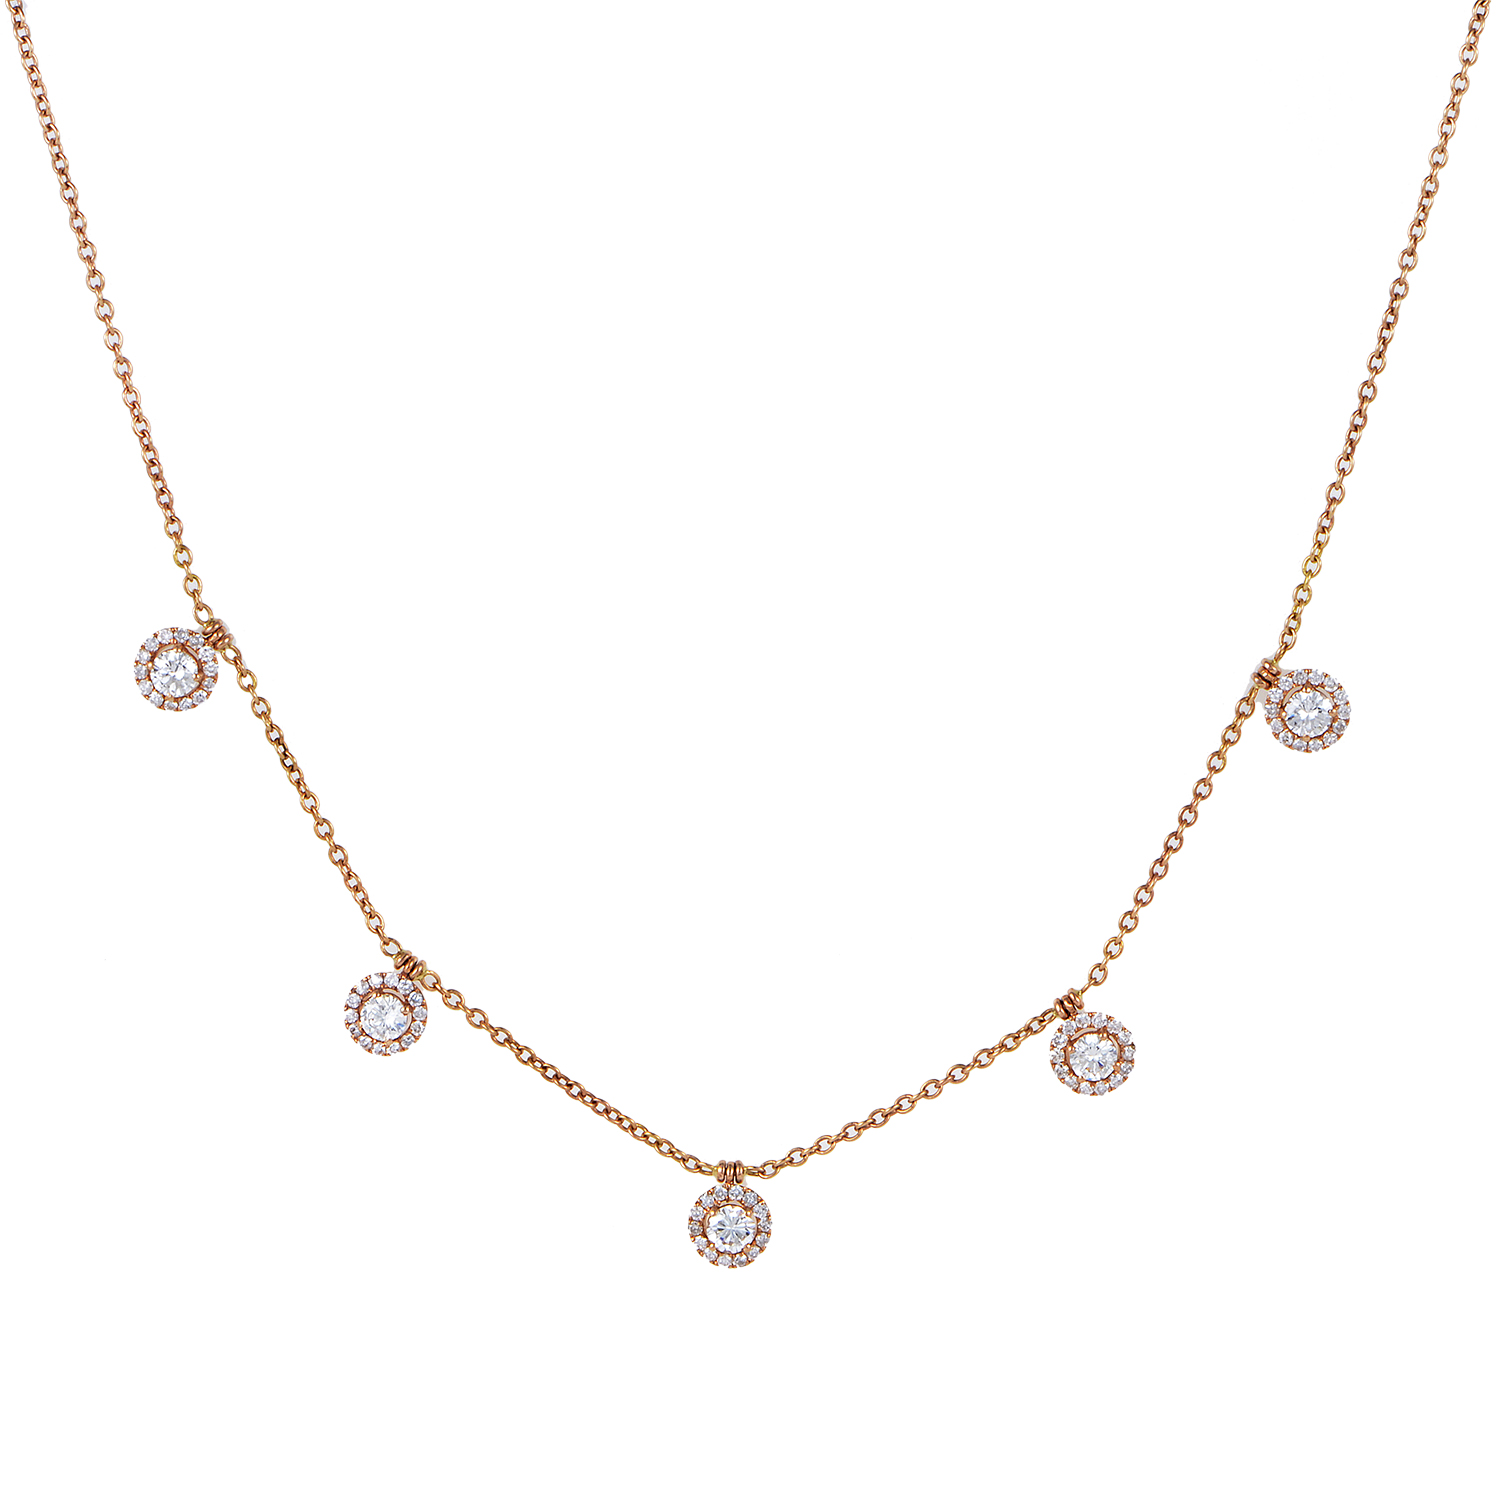 Women's 18K Rose Gold Dangling Diamonds Necklace KE3111NTRZLRG